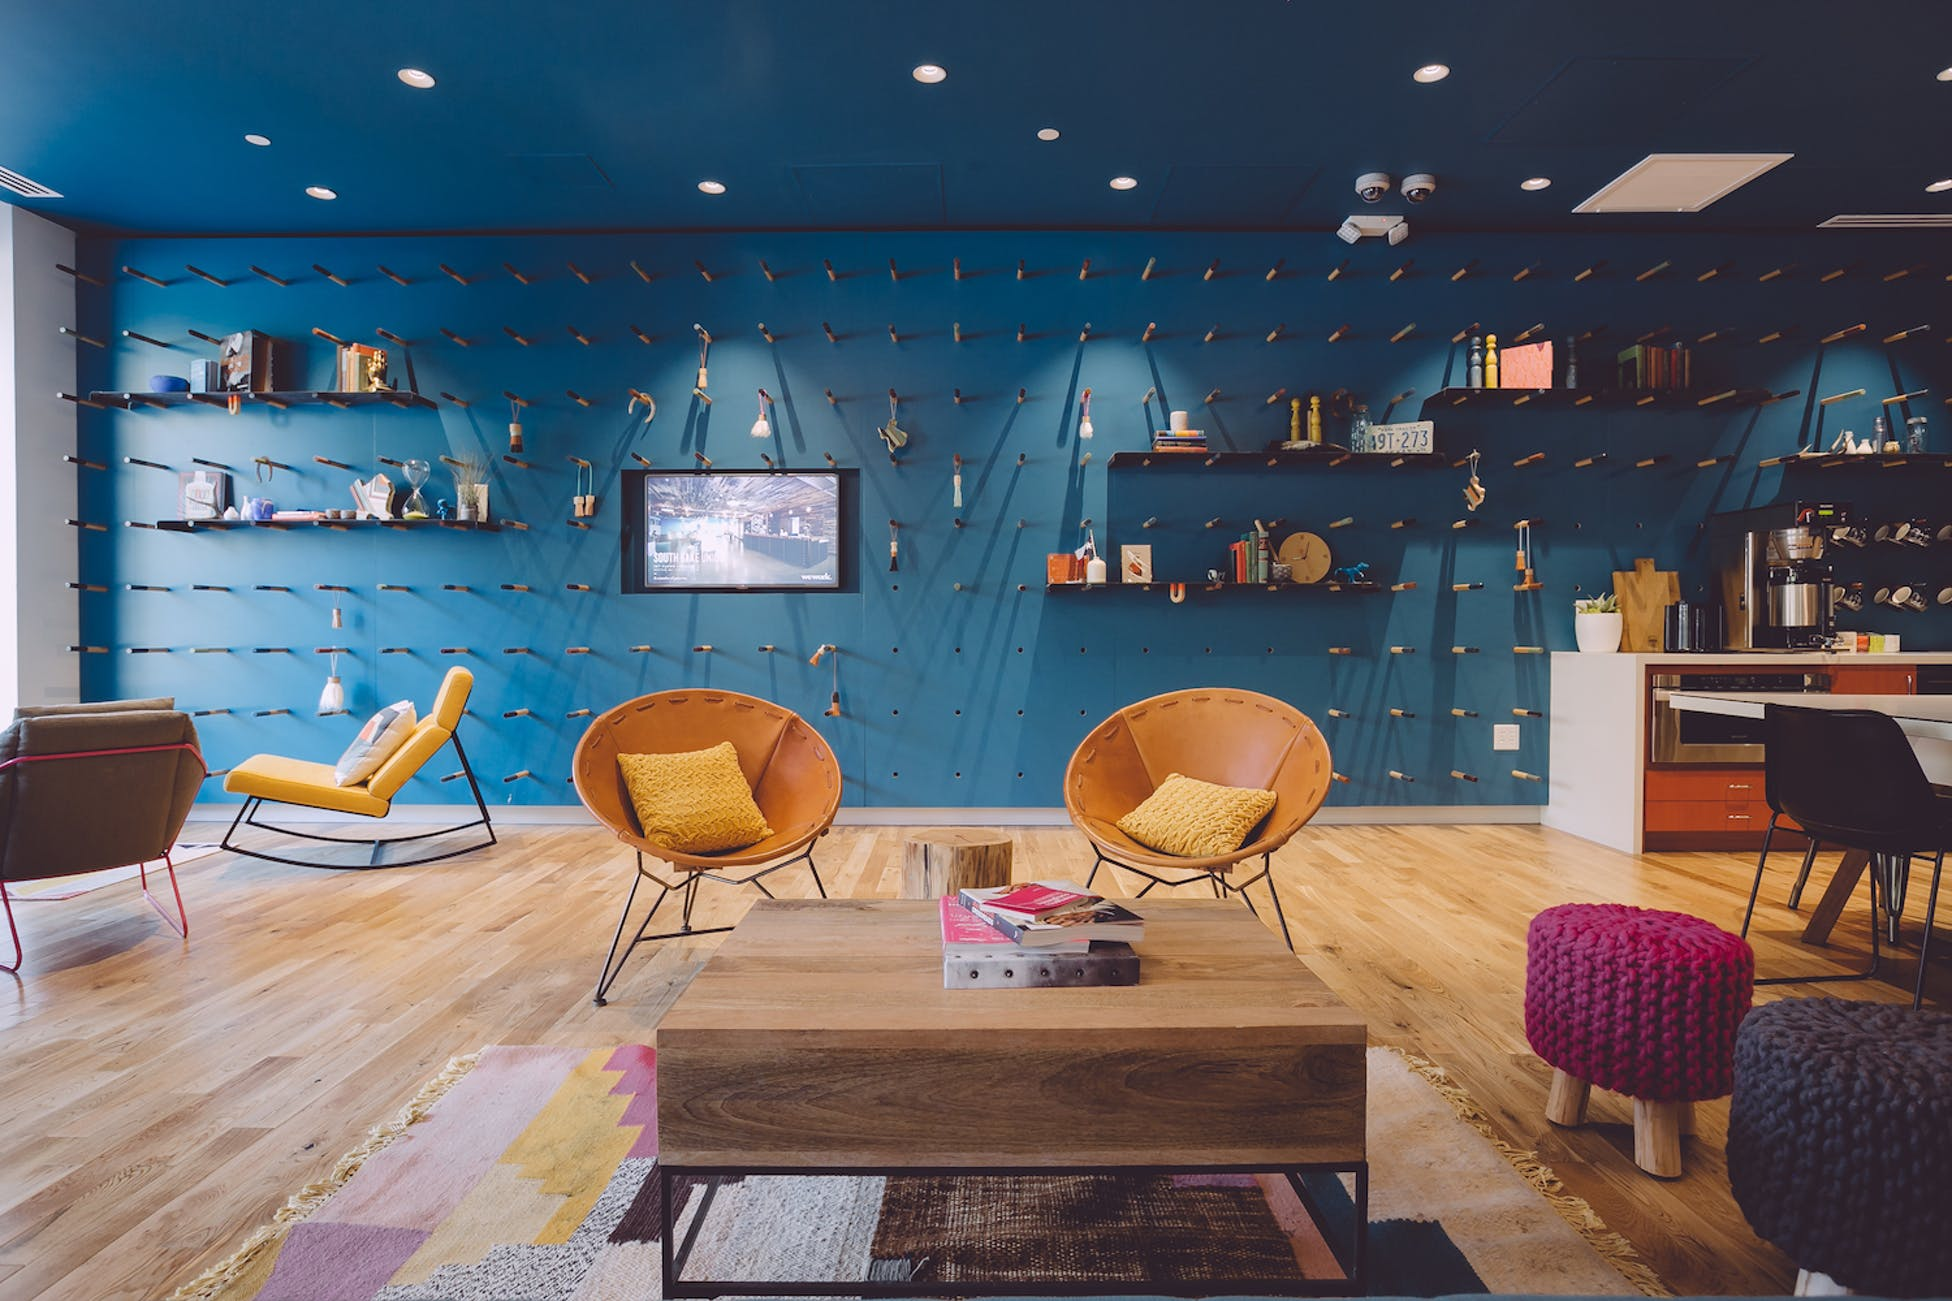 Common area with living chairs and square coffee table with magazines